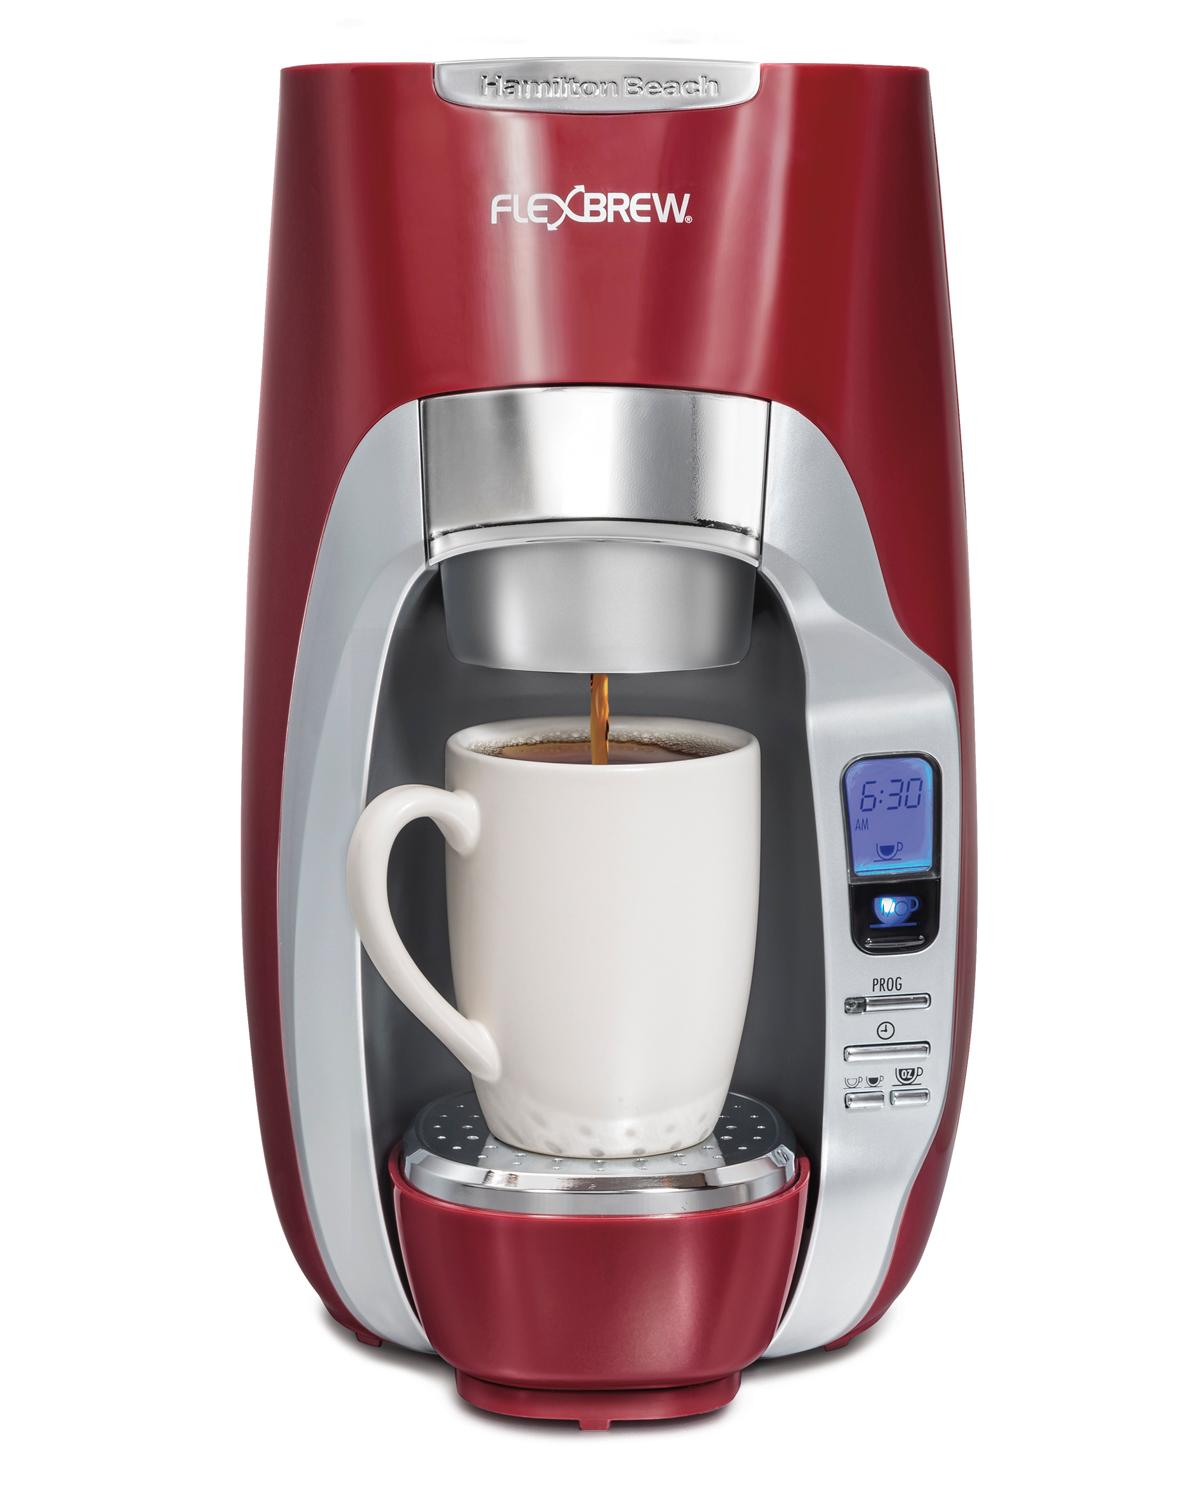 Hamilton Beach 49994 Flexbrew Programmable